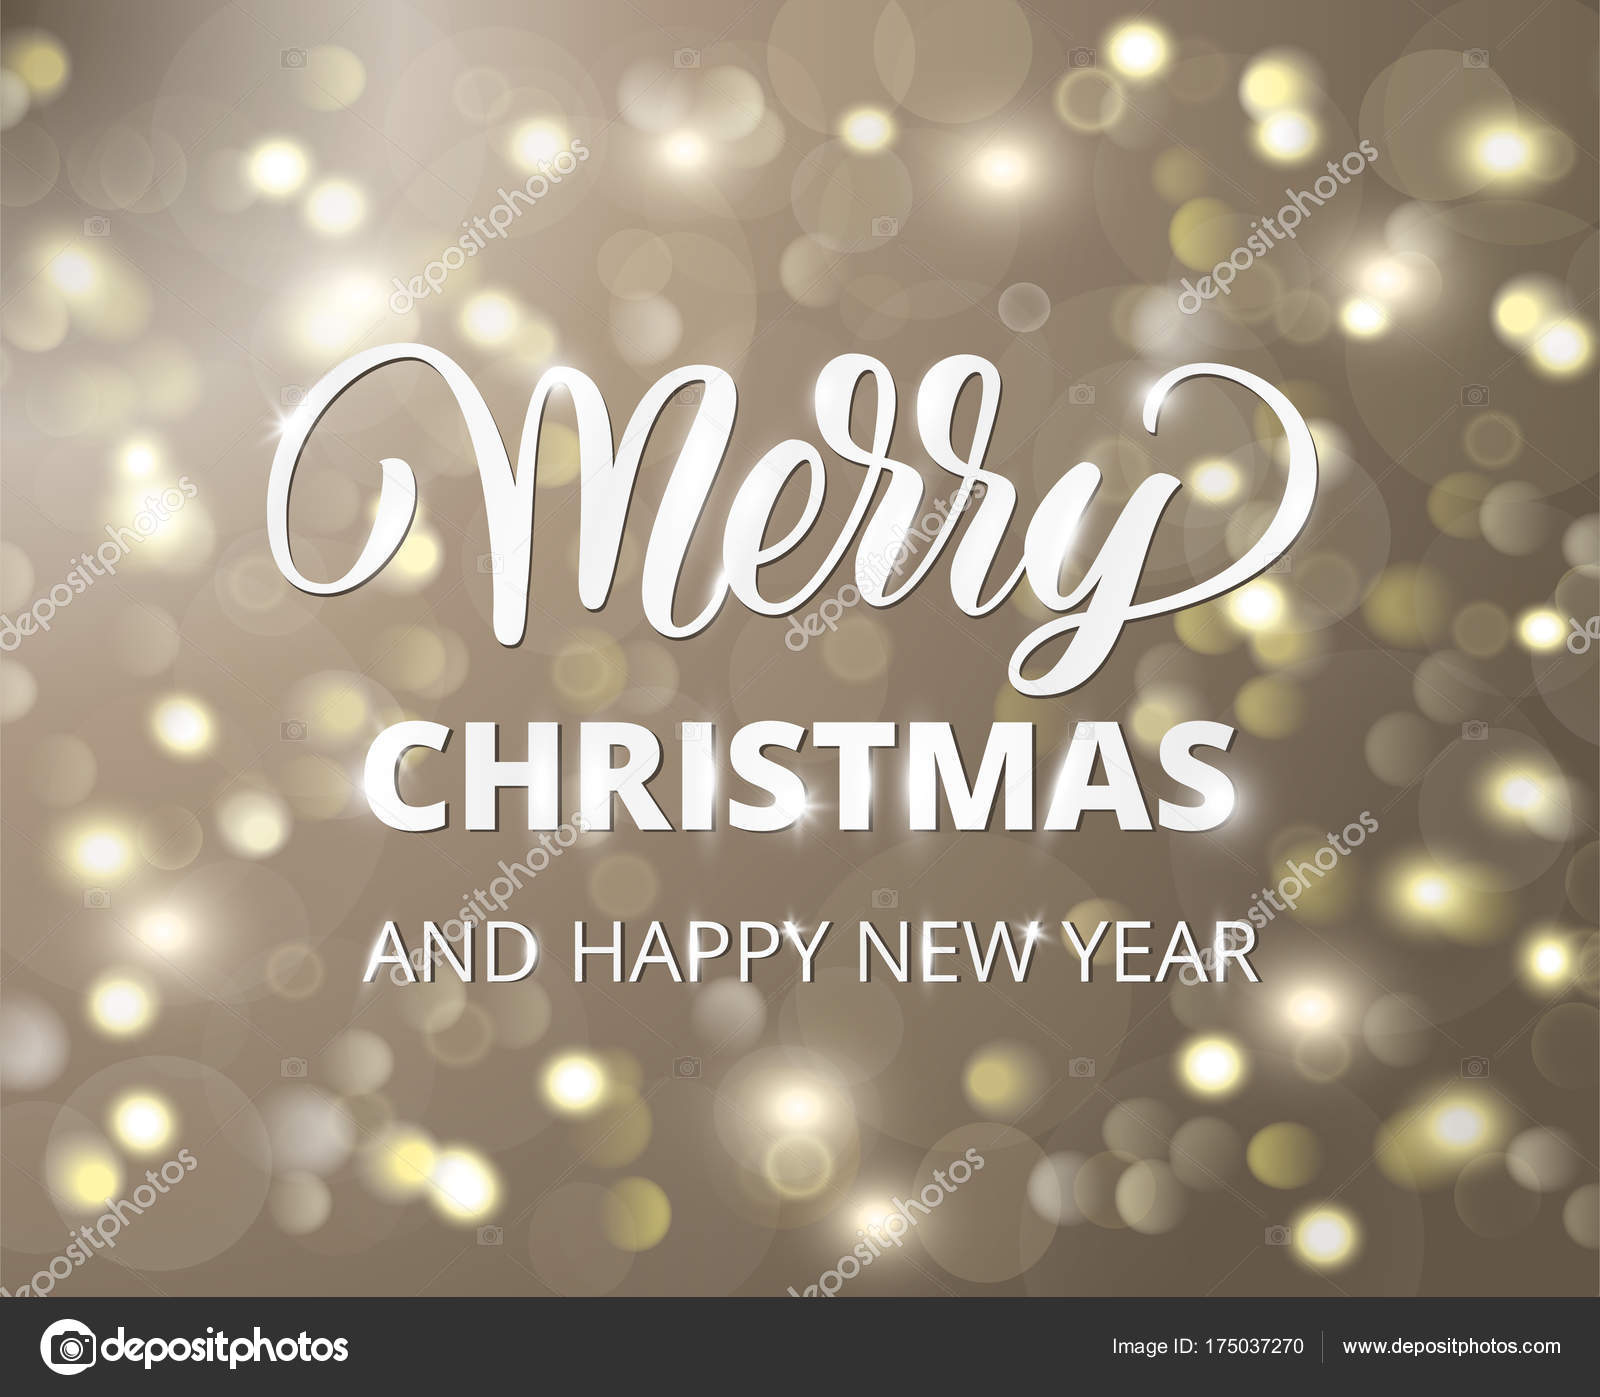 Merry Christmas Text.Merry Christmas Text Holiday Greetings Quote Golden